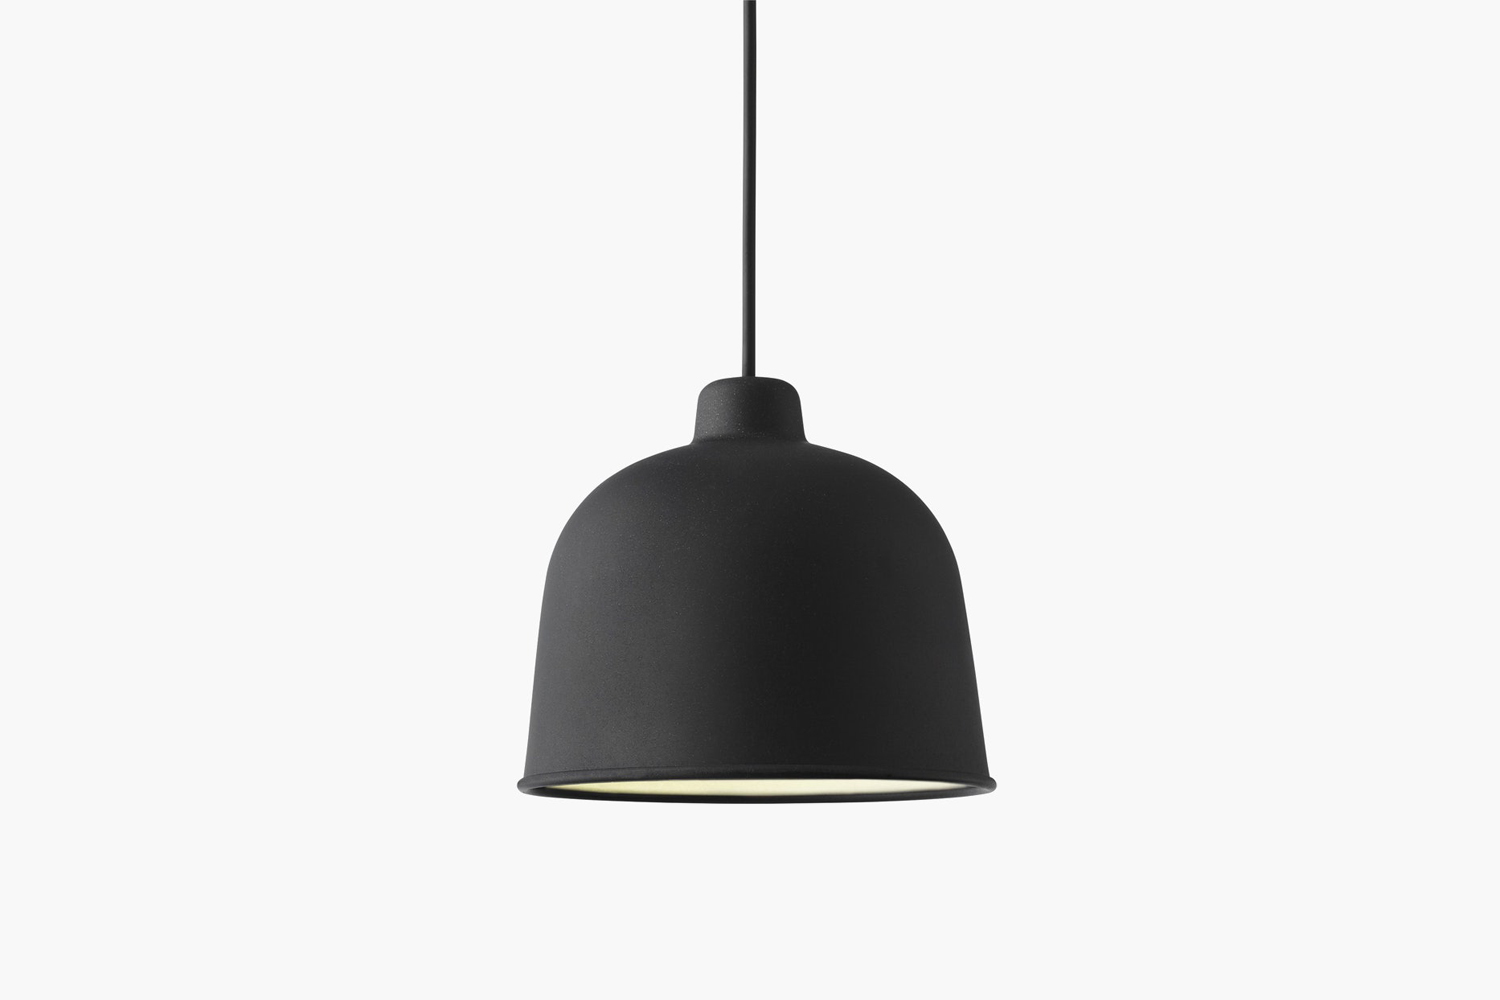 From Muuto, the Grain Pendant Light in black is $9 at Design Within Reach.